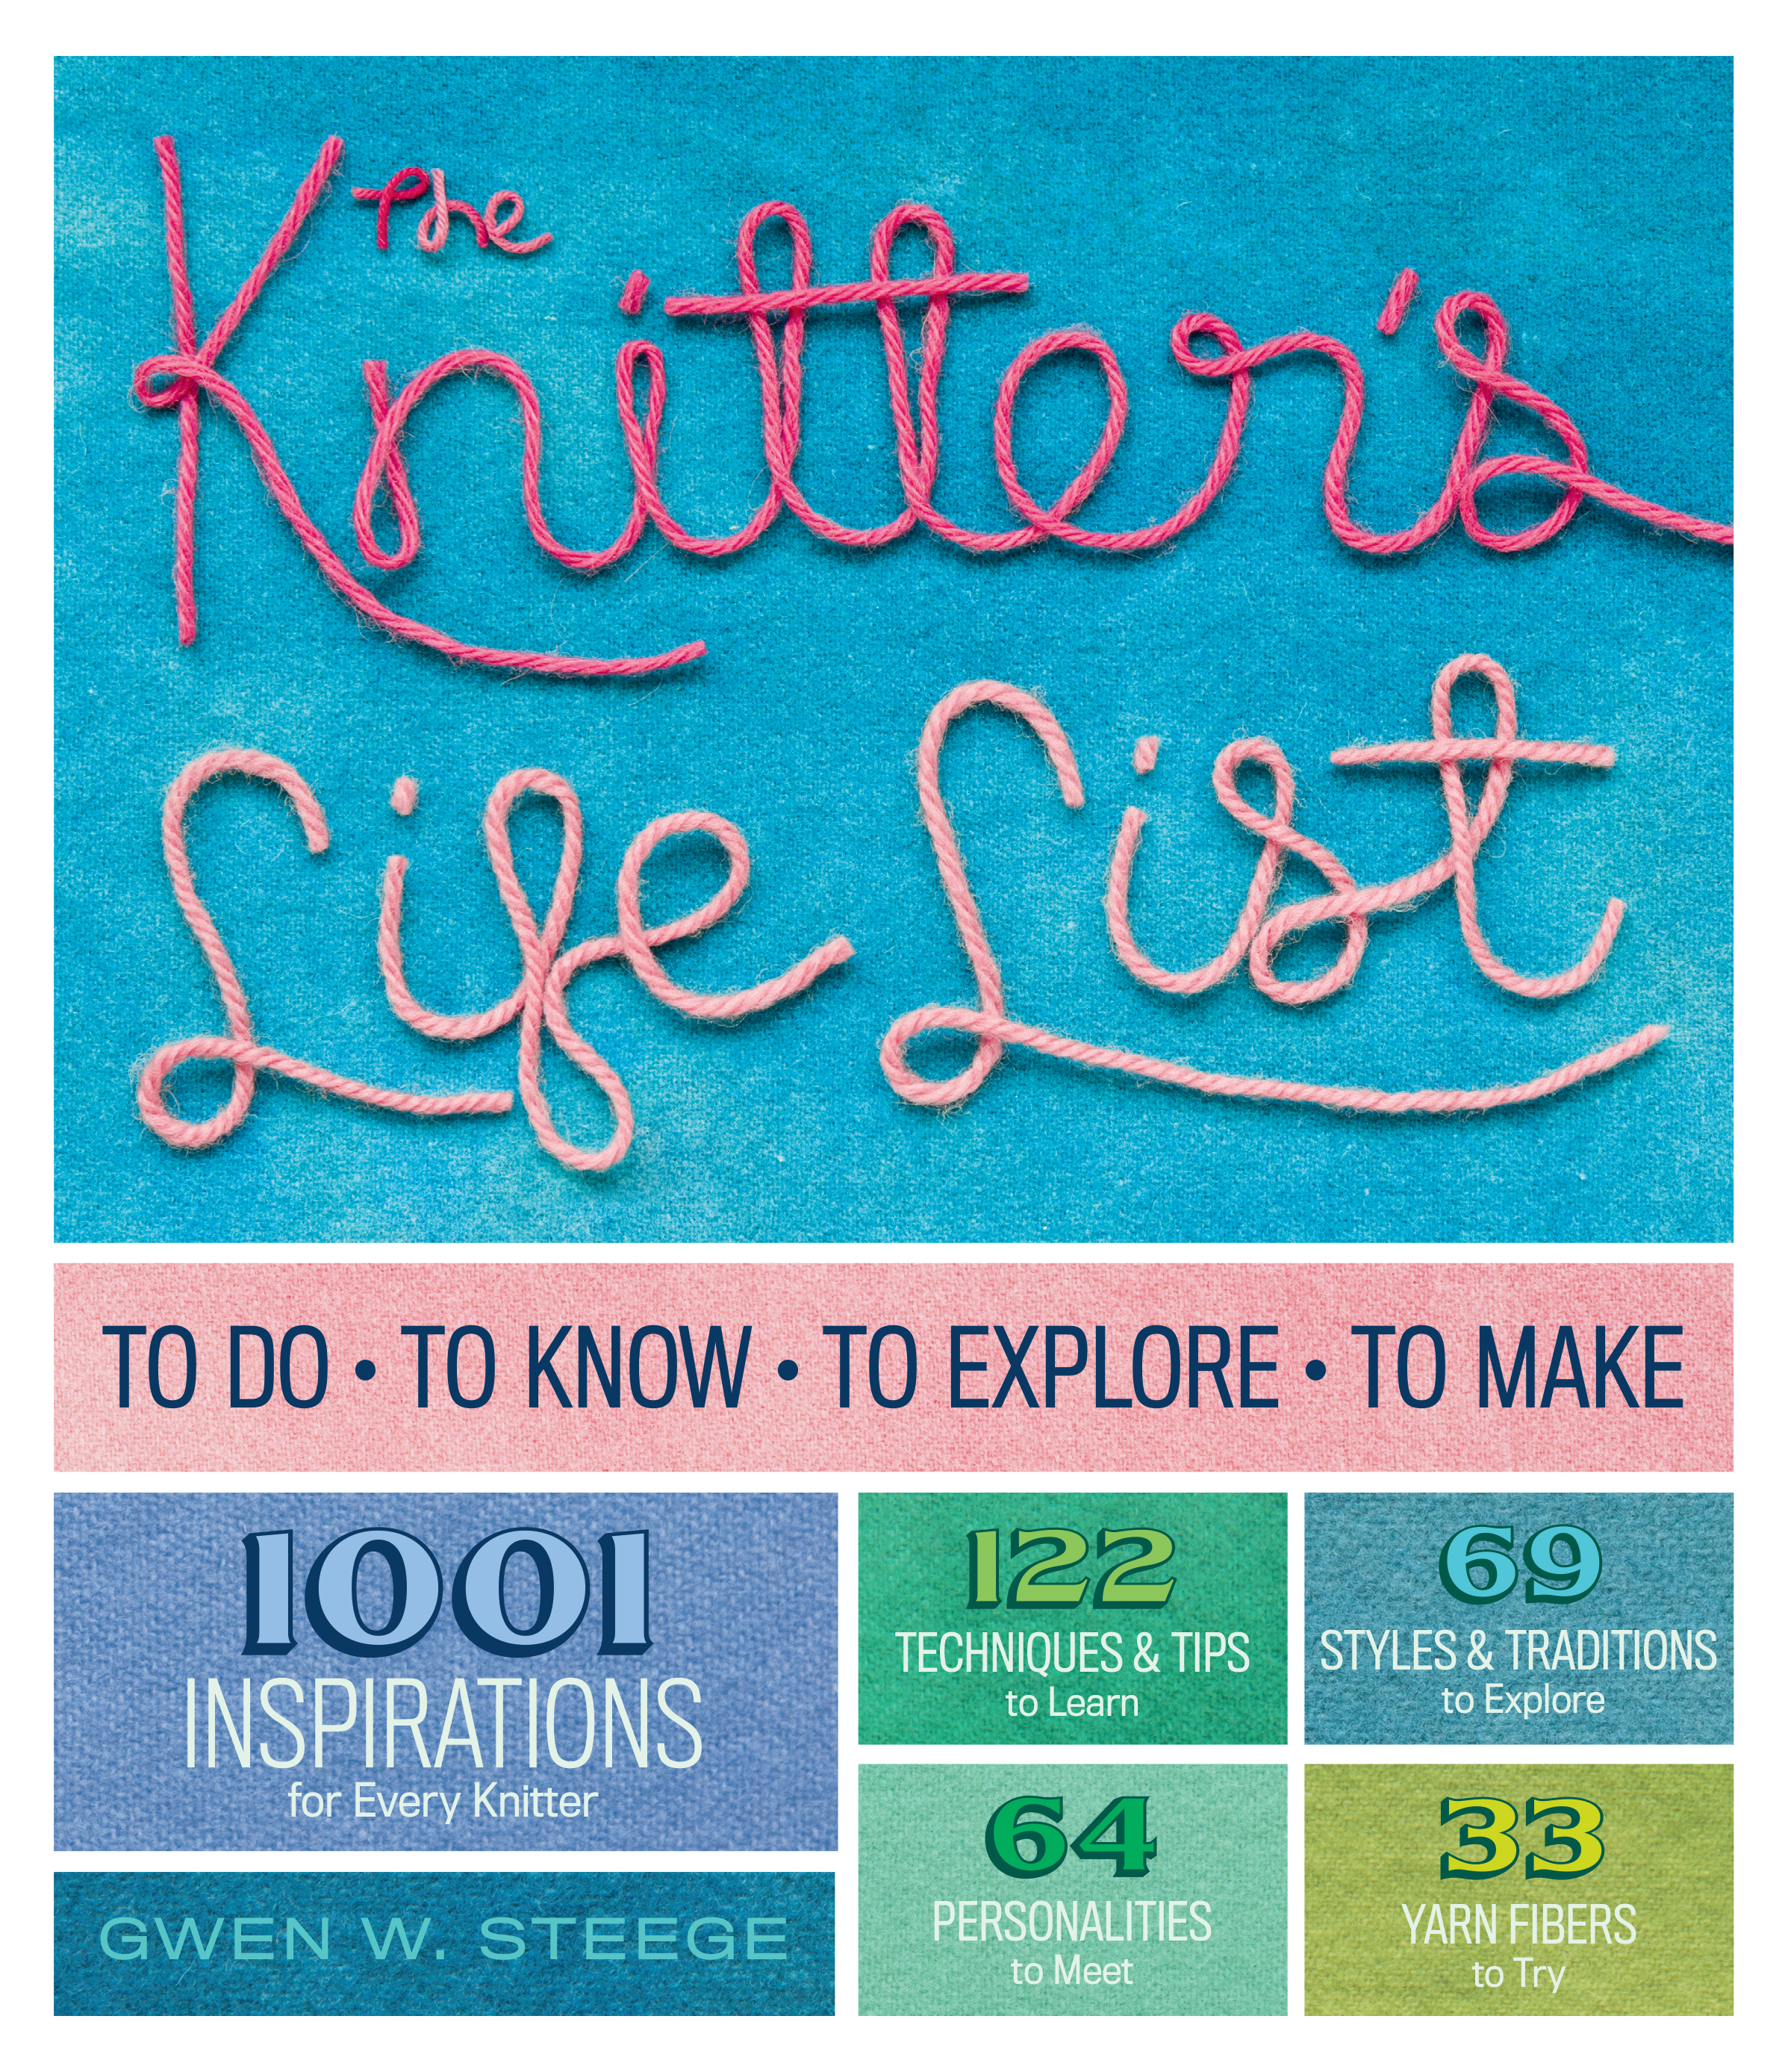 The Knitter's Life List To Do, To Know, To Explore, To Make - Gwen W. Steege